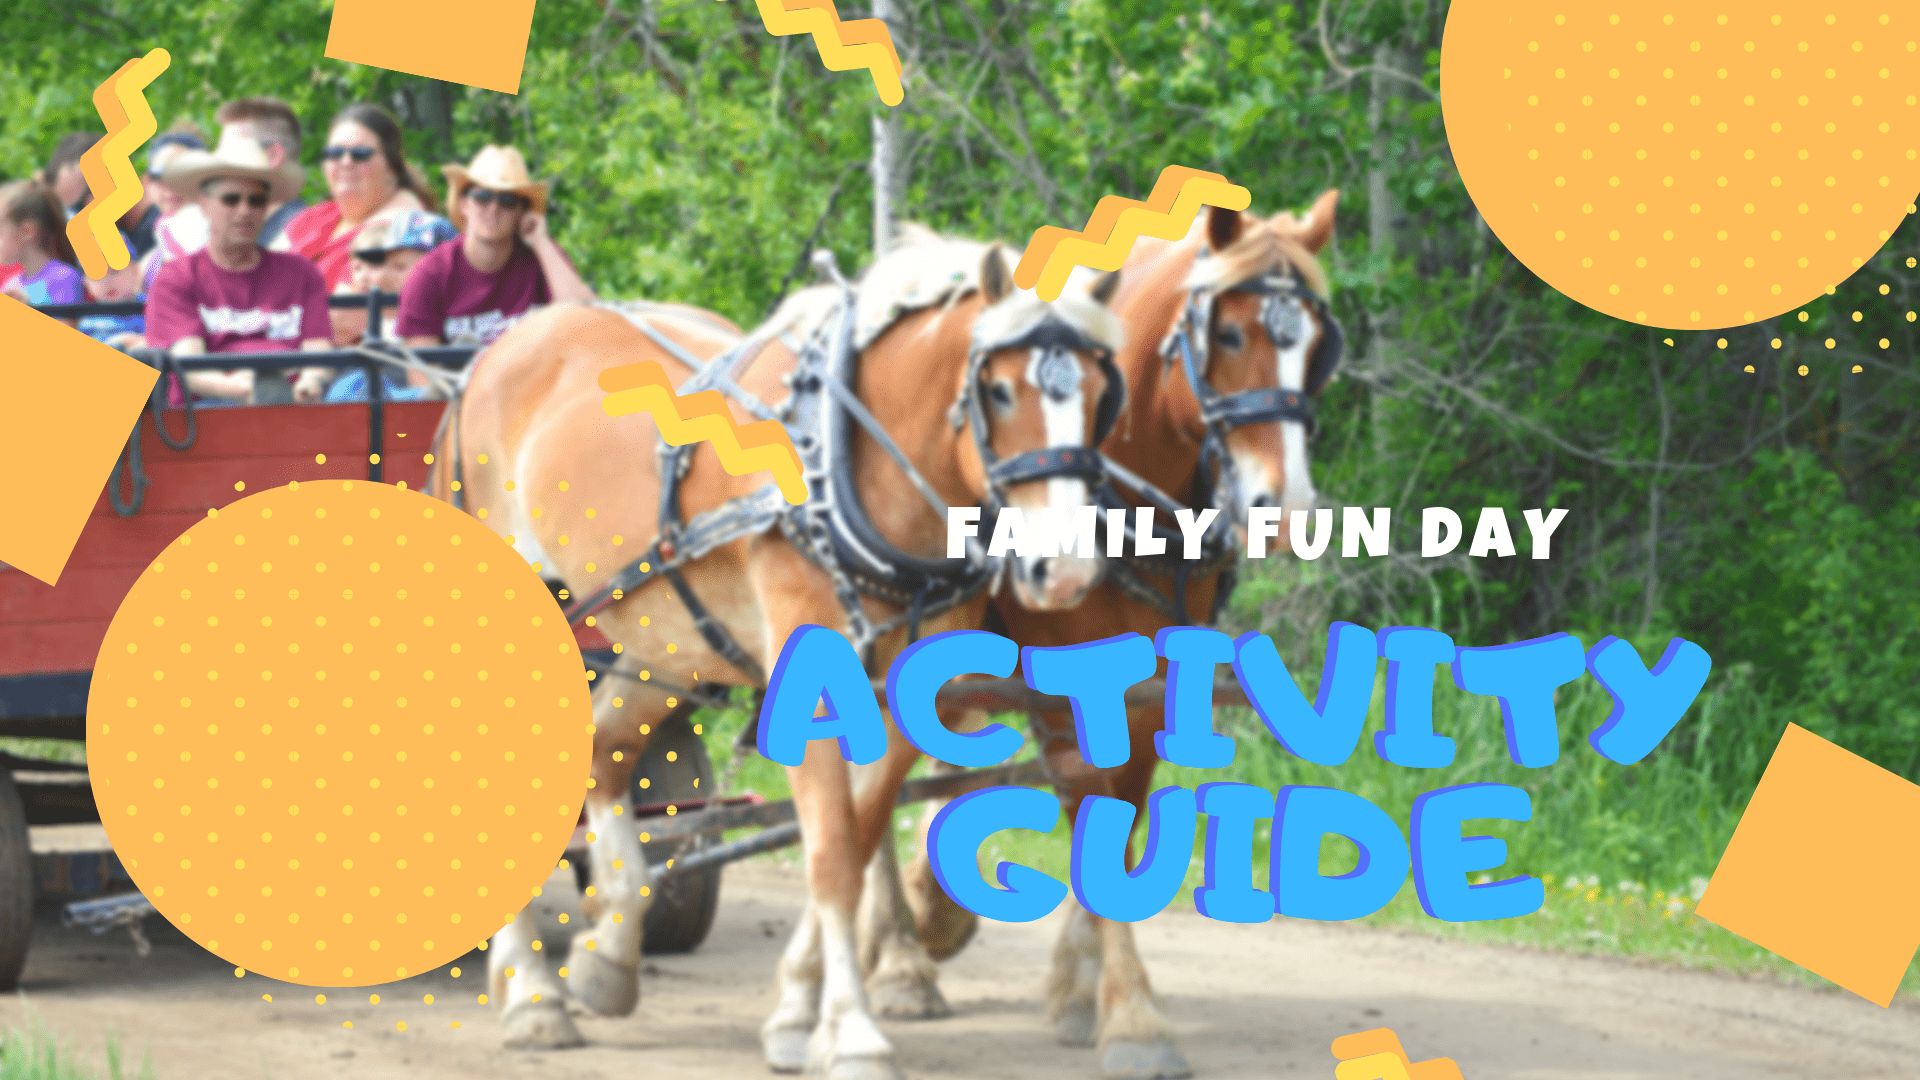 Header Image for Activity Guide for Family Fun Day